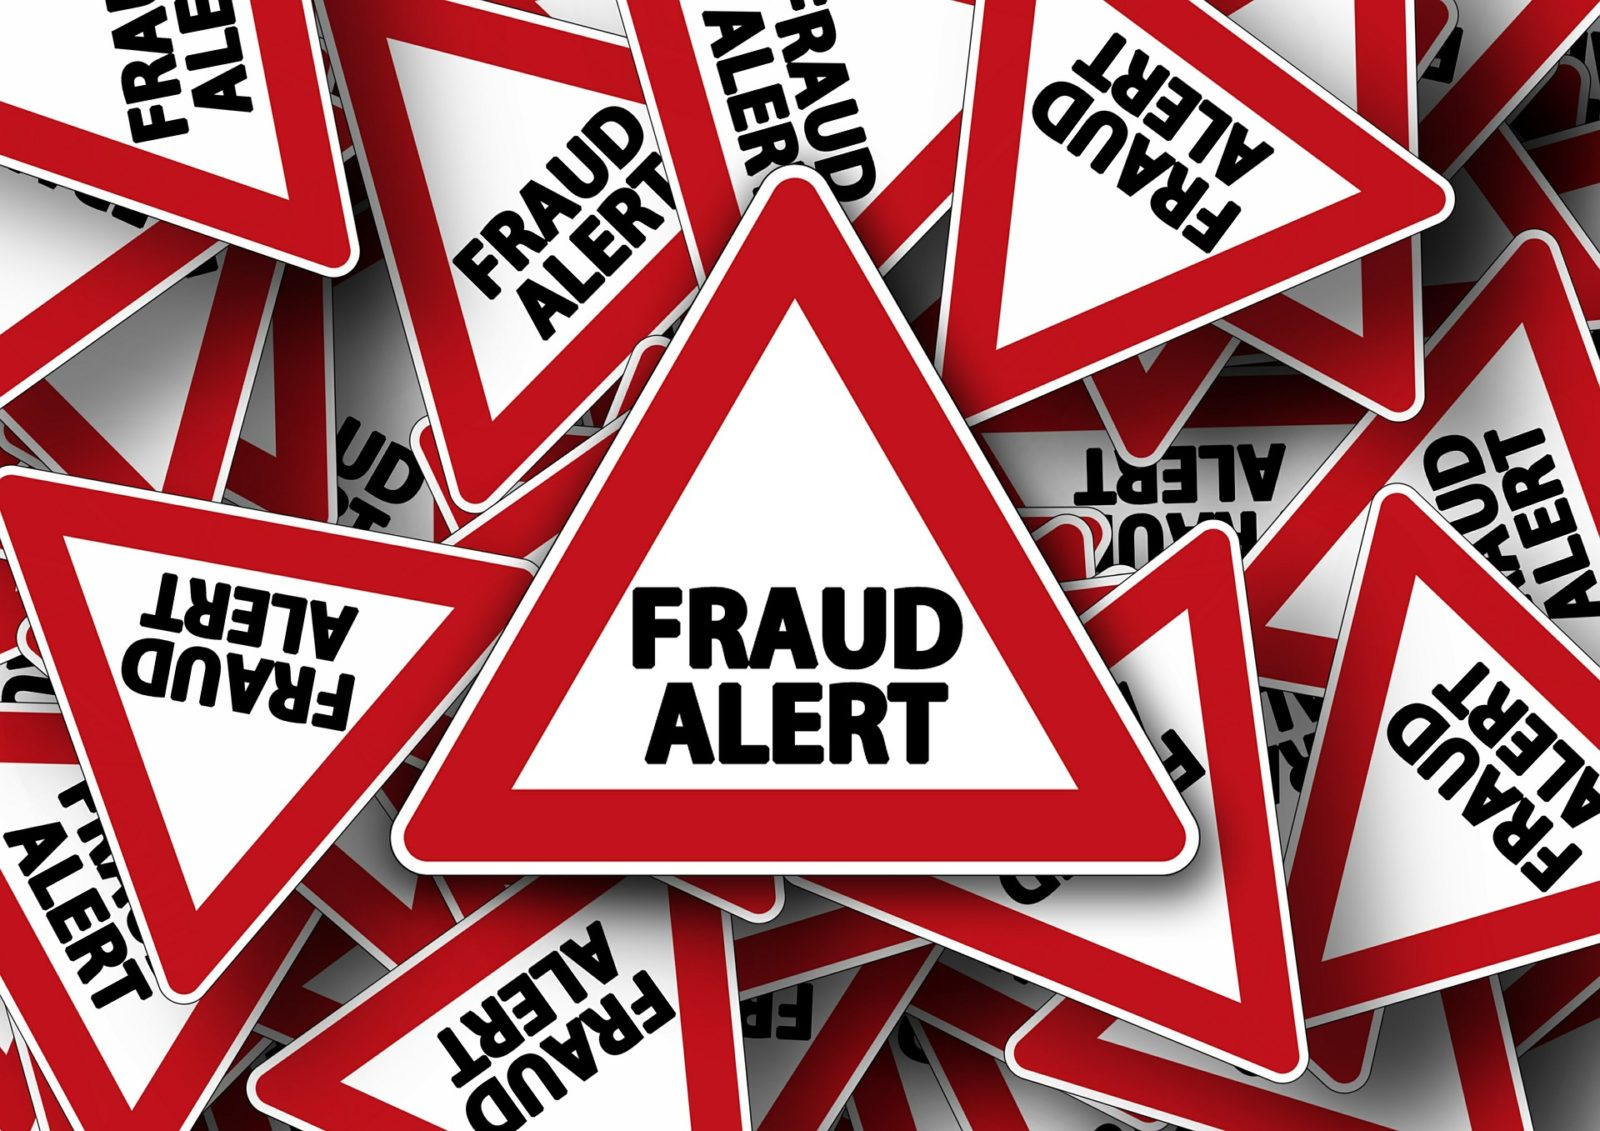 Phone Scam Alert Firstenergy Regions Community Energy Advisors Wiring Instructions For Bank Columbia Gas